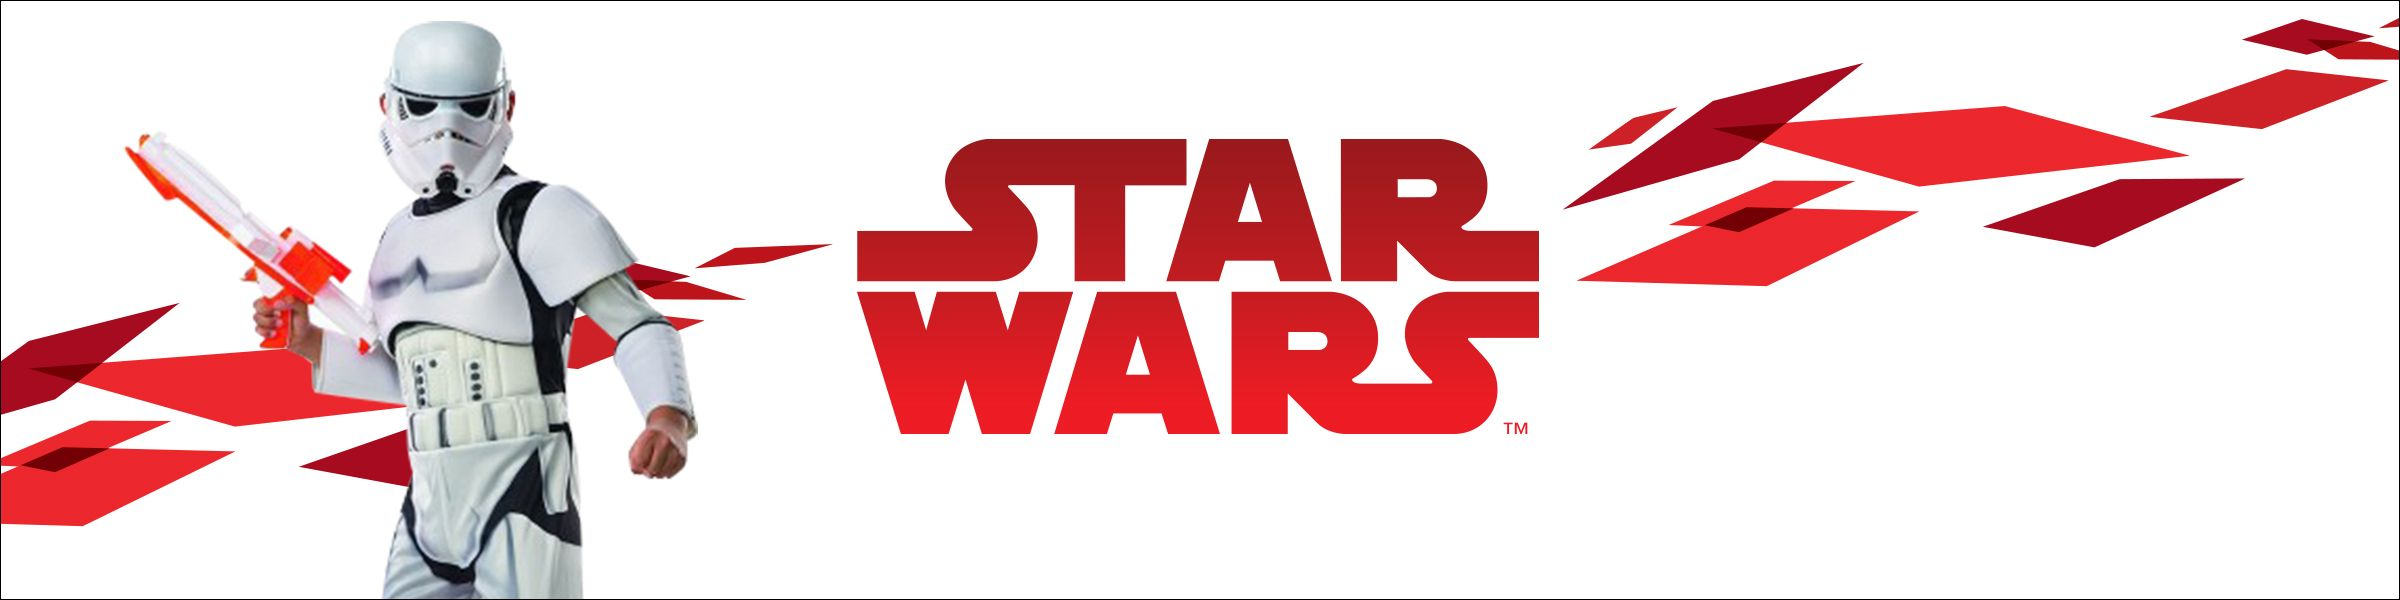 Star Wars Costumes Party Supplies Target